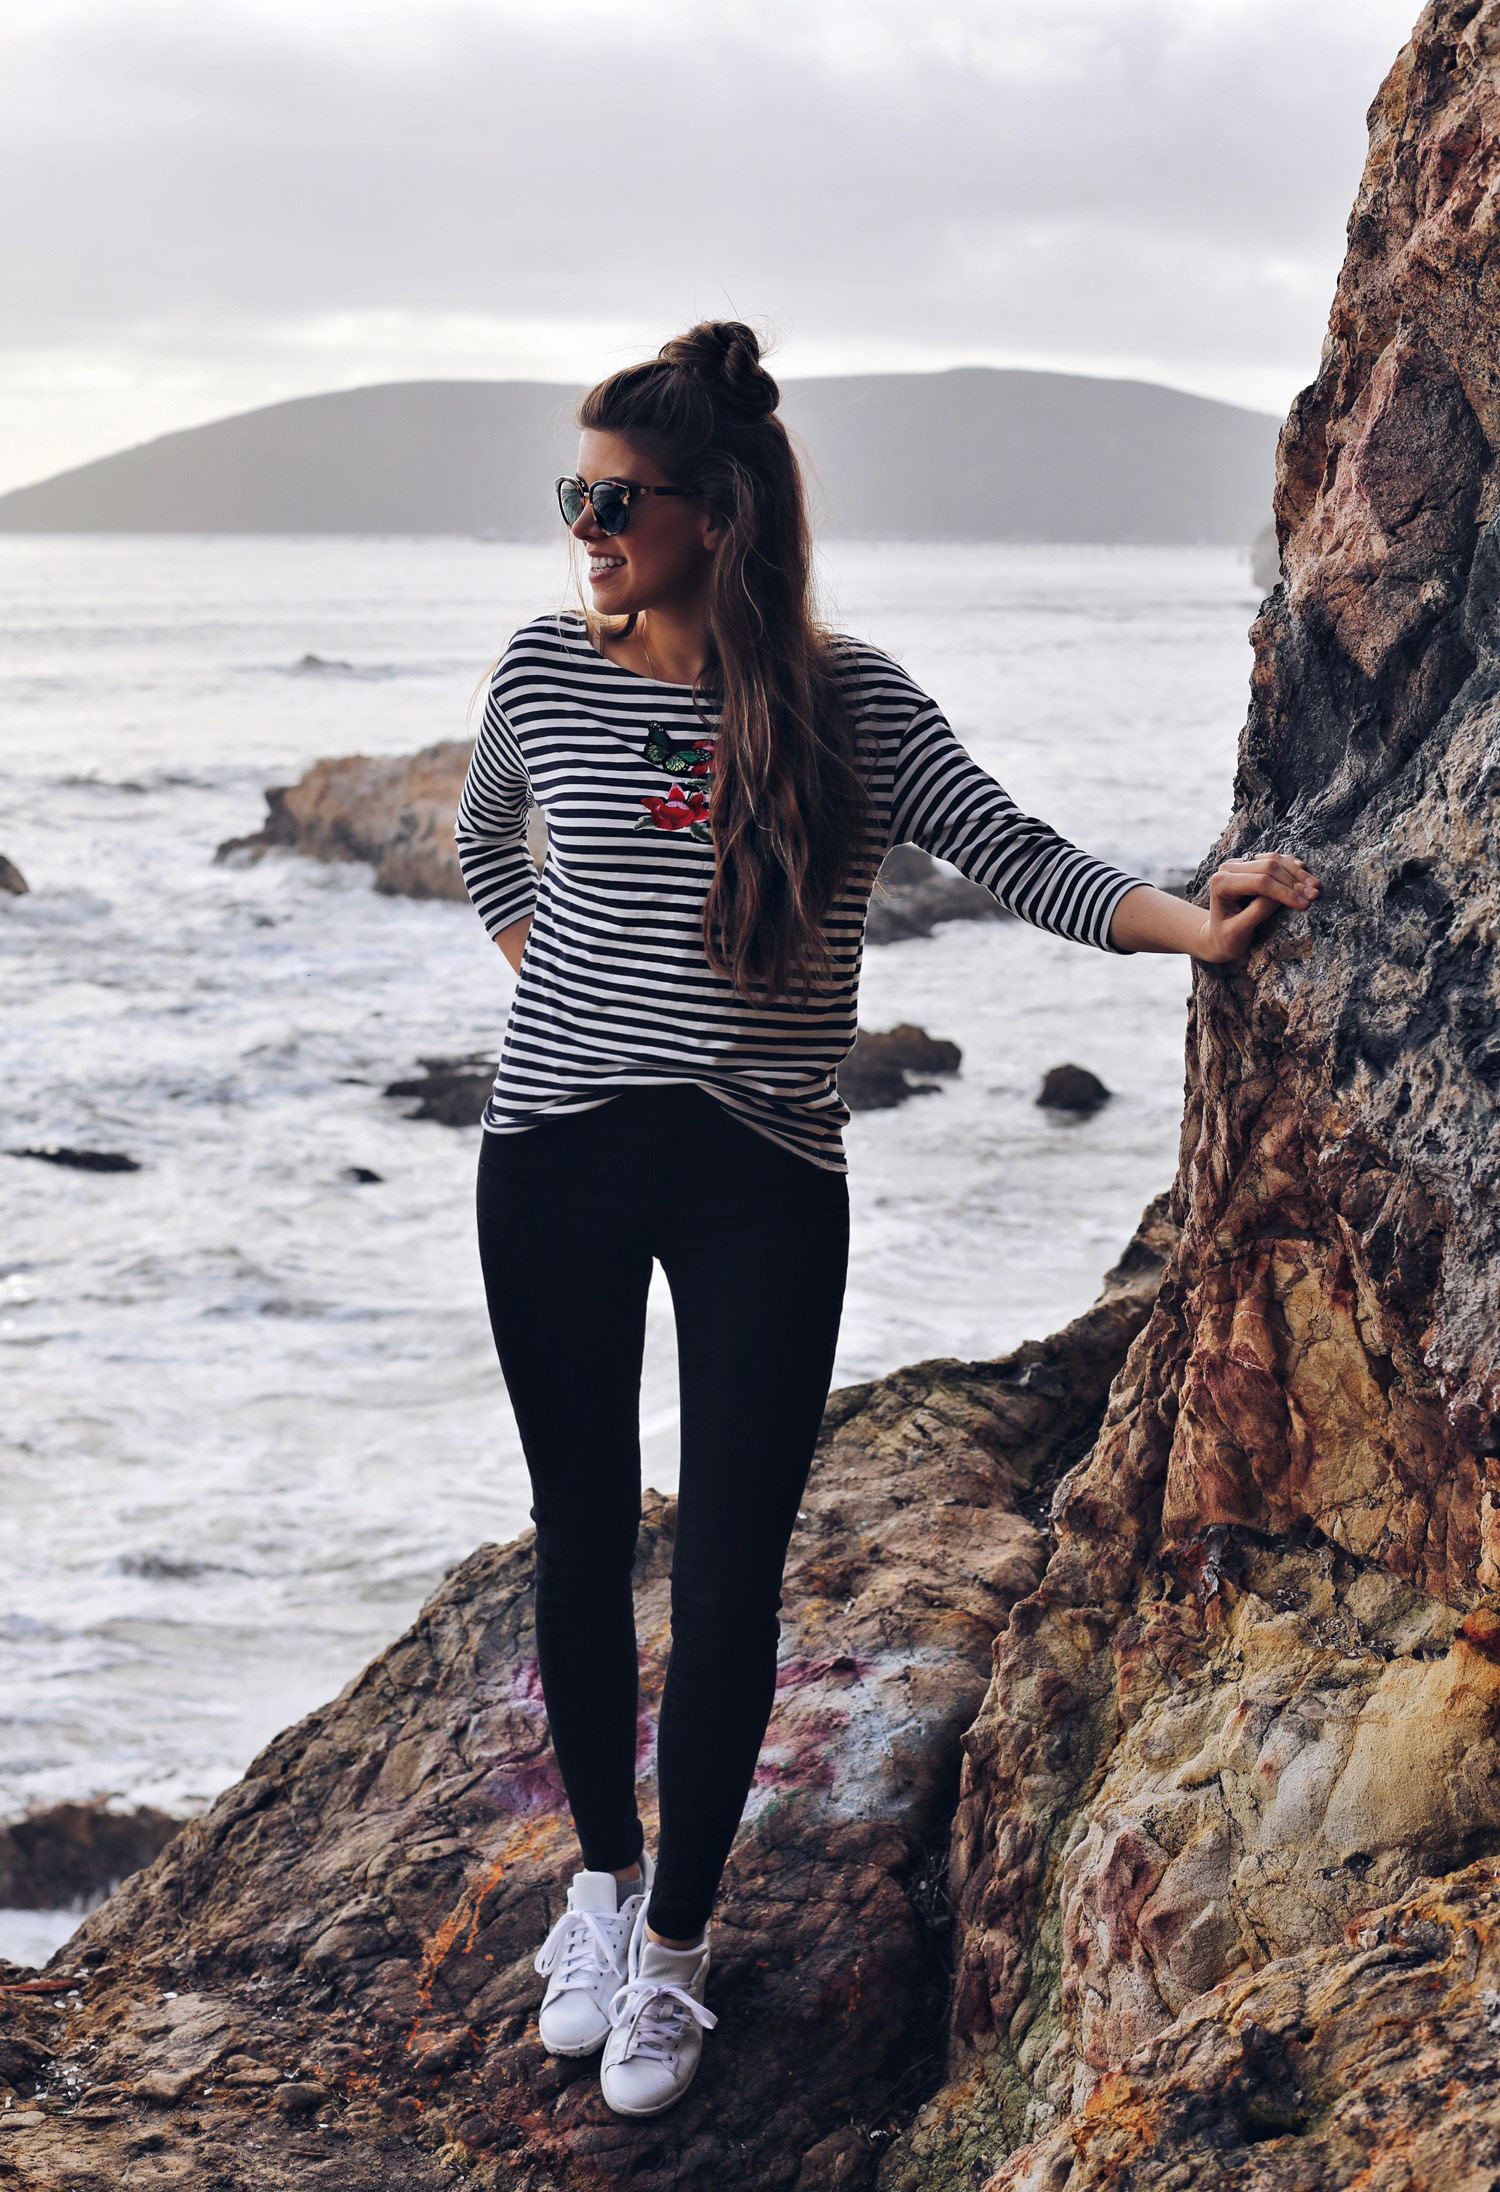 Fashion and lifestyle blogger Adelina Perrin of The Charming Olive wearing Marks & Spencer striped top, Mott & Bow Jeans, Adidas Sneakers and Tory Burch Sunglasses